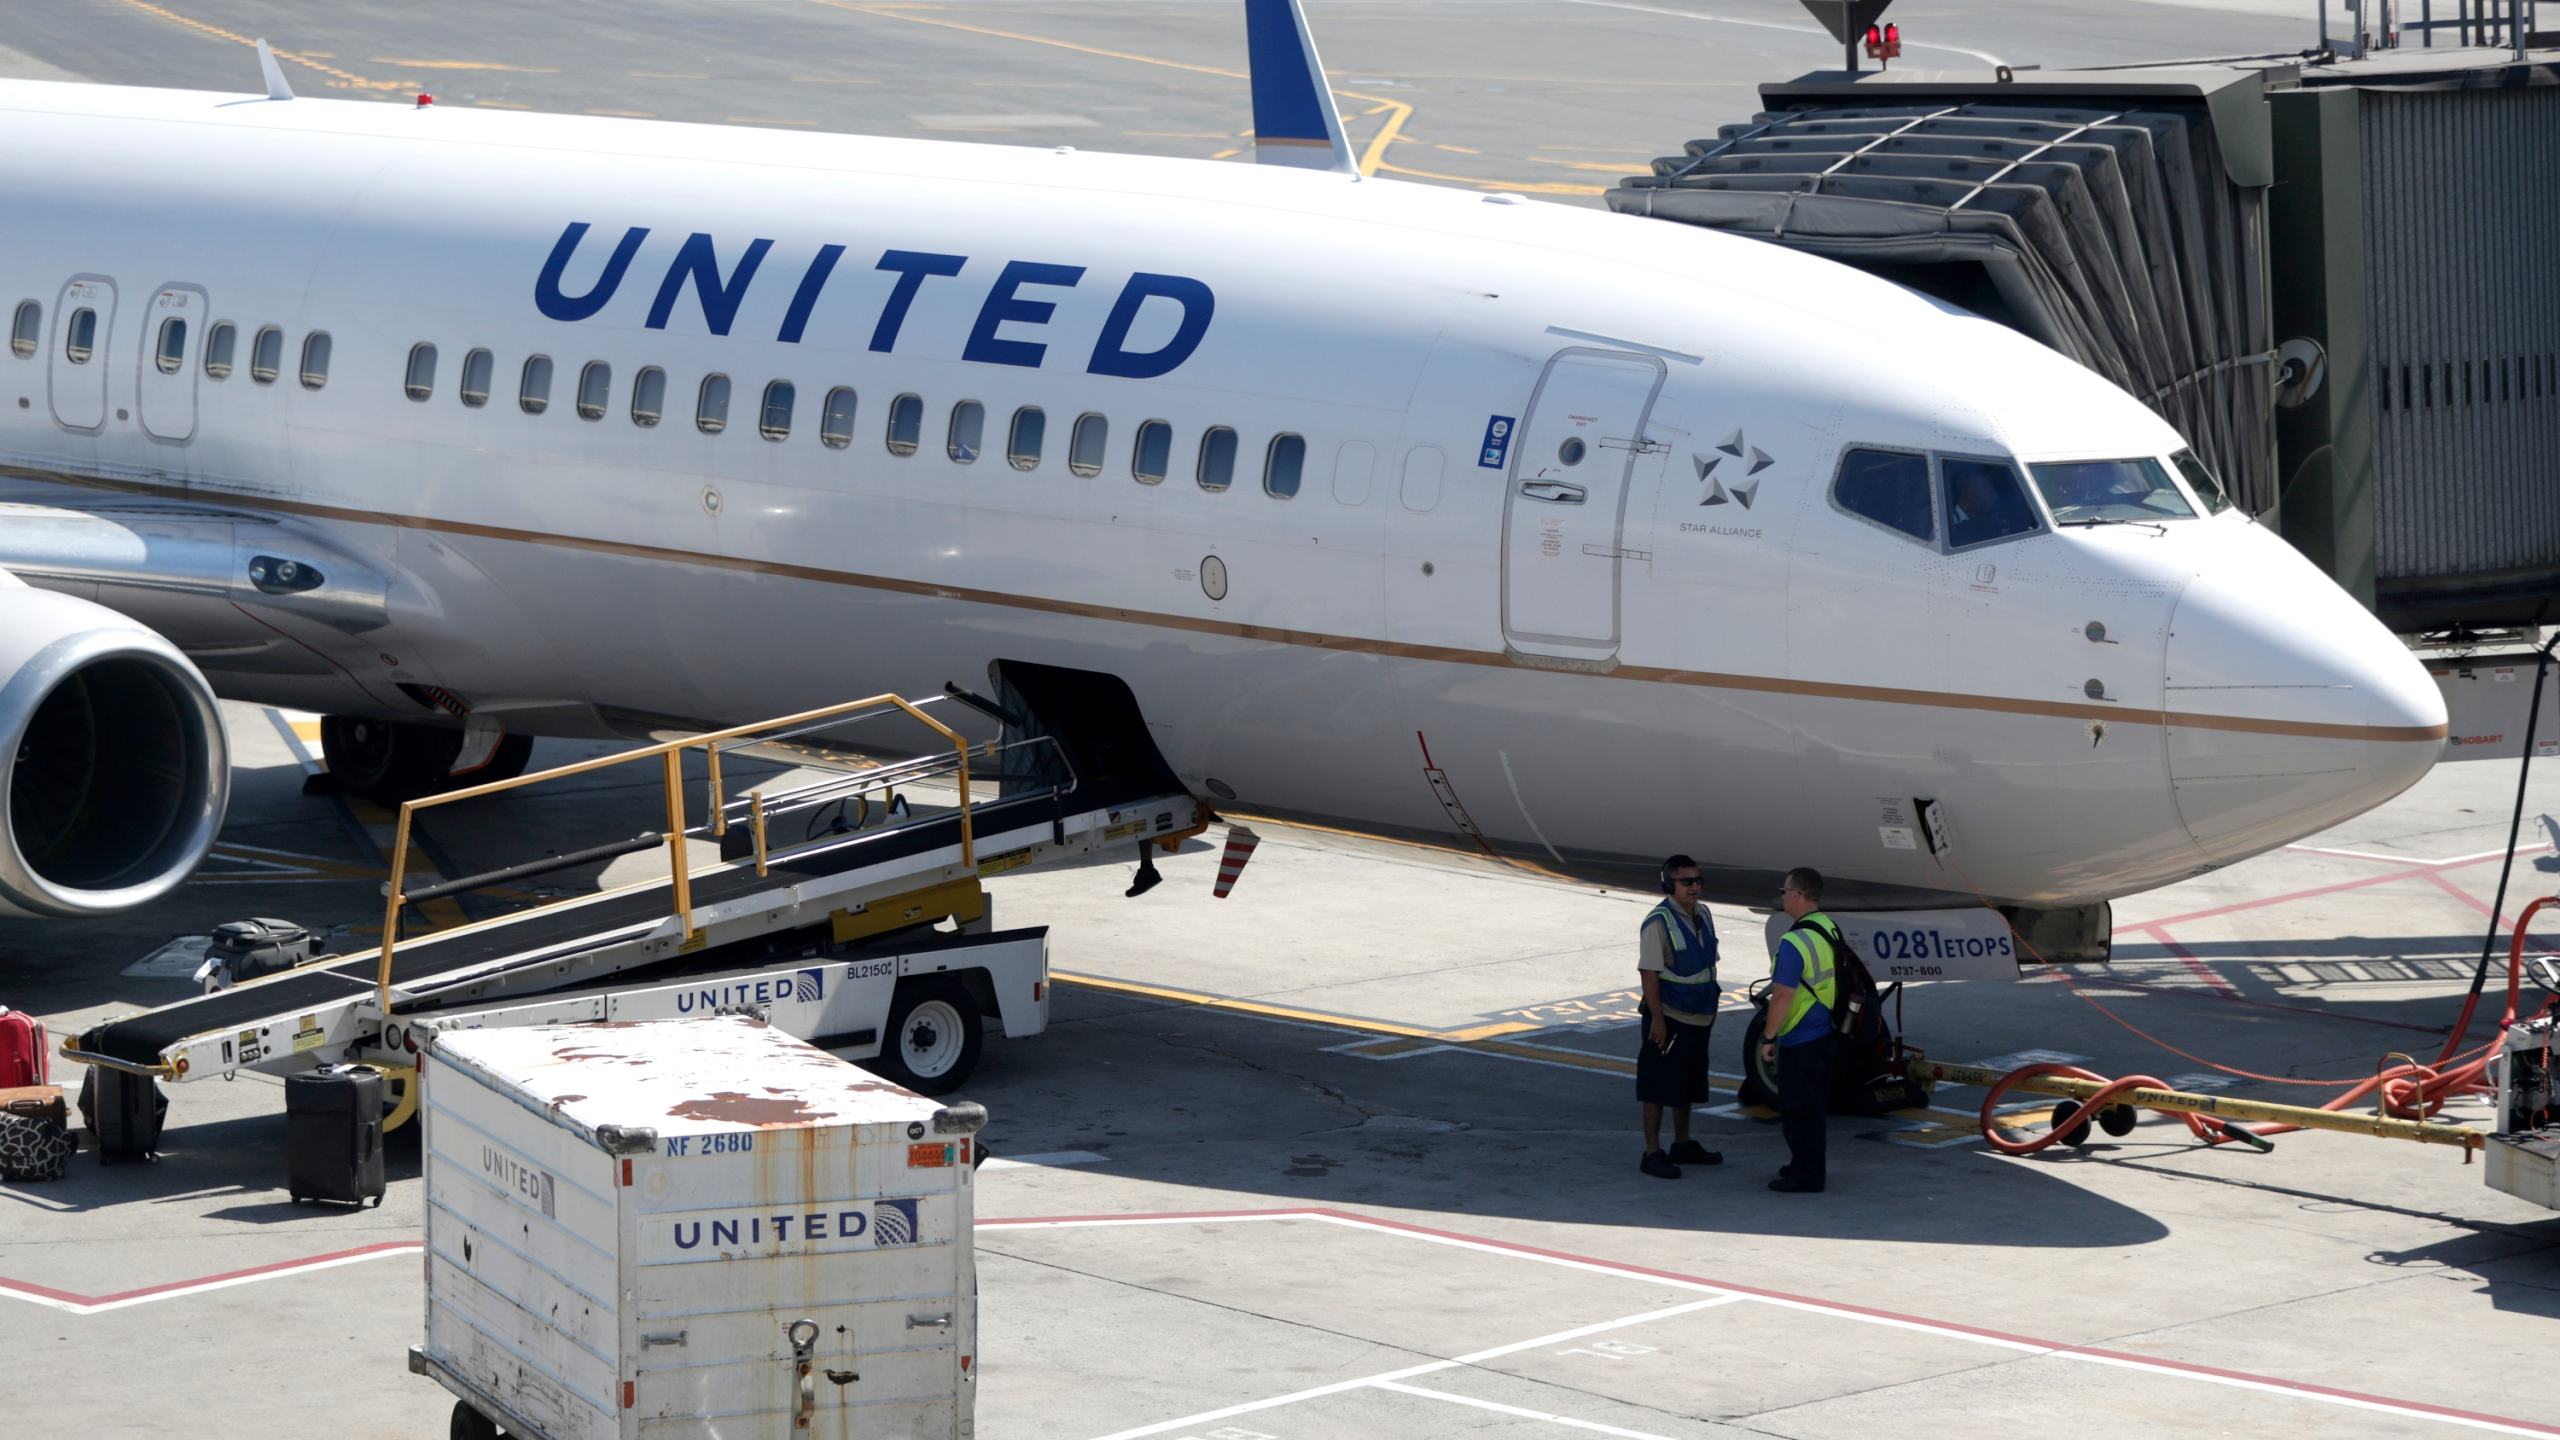 In this July 18, 2018, file photo a United Airlines commercial jet sits at a gate at Terminal C of Newark Liberty International Airport in Newark, N.J. (AP Photo/Julio Cortez, File)